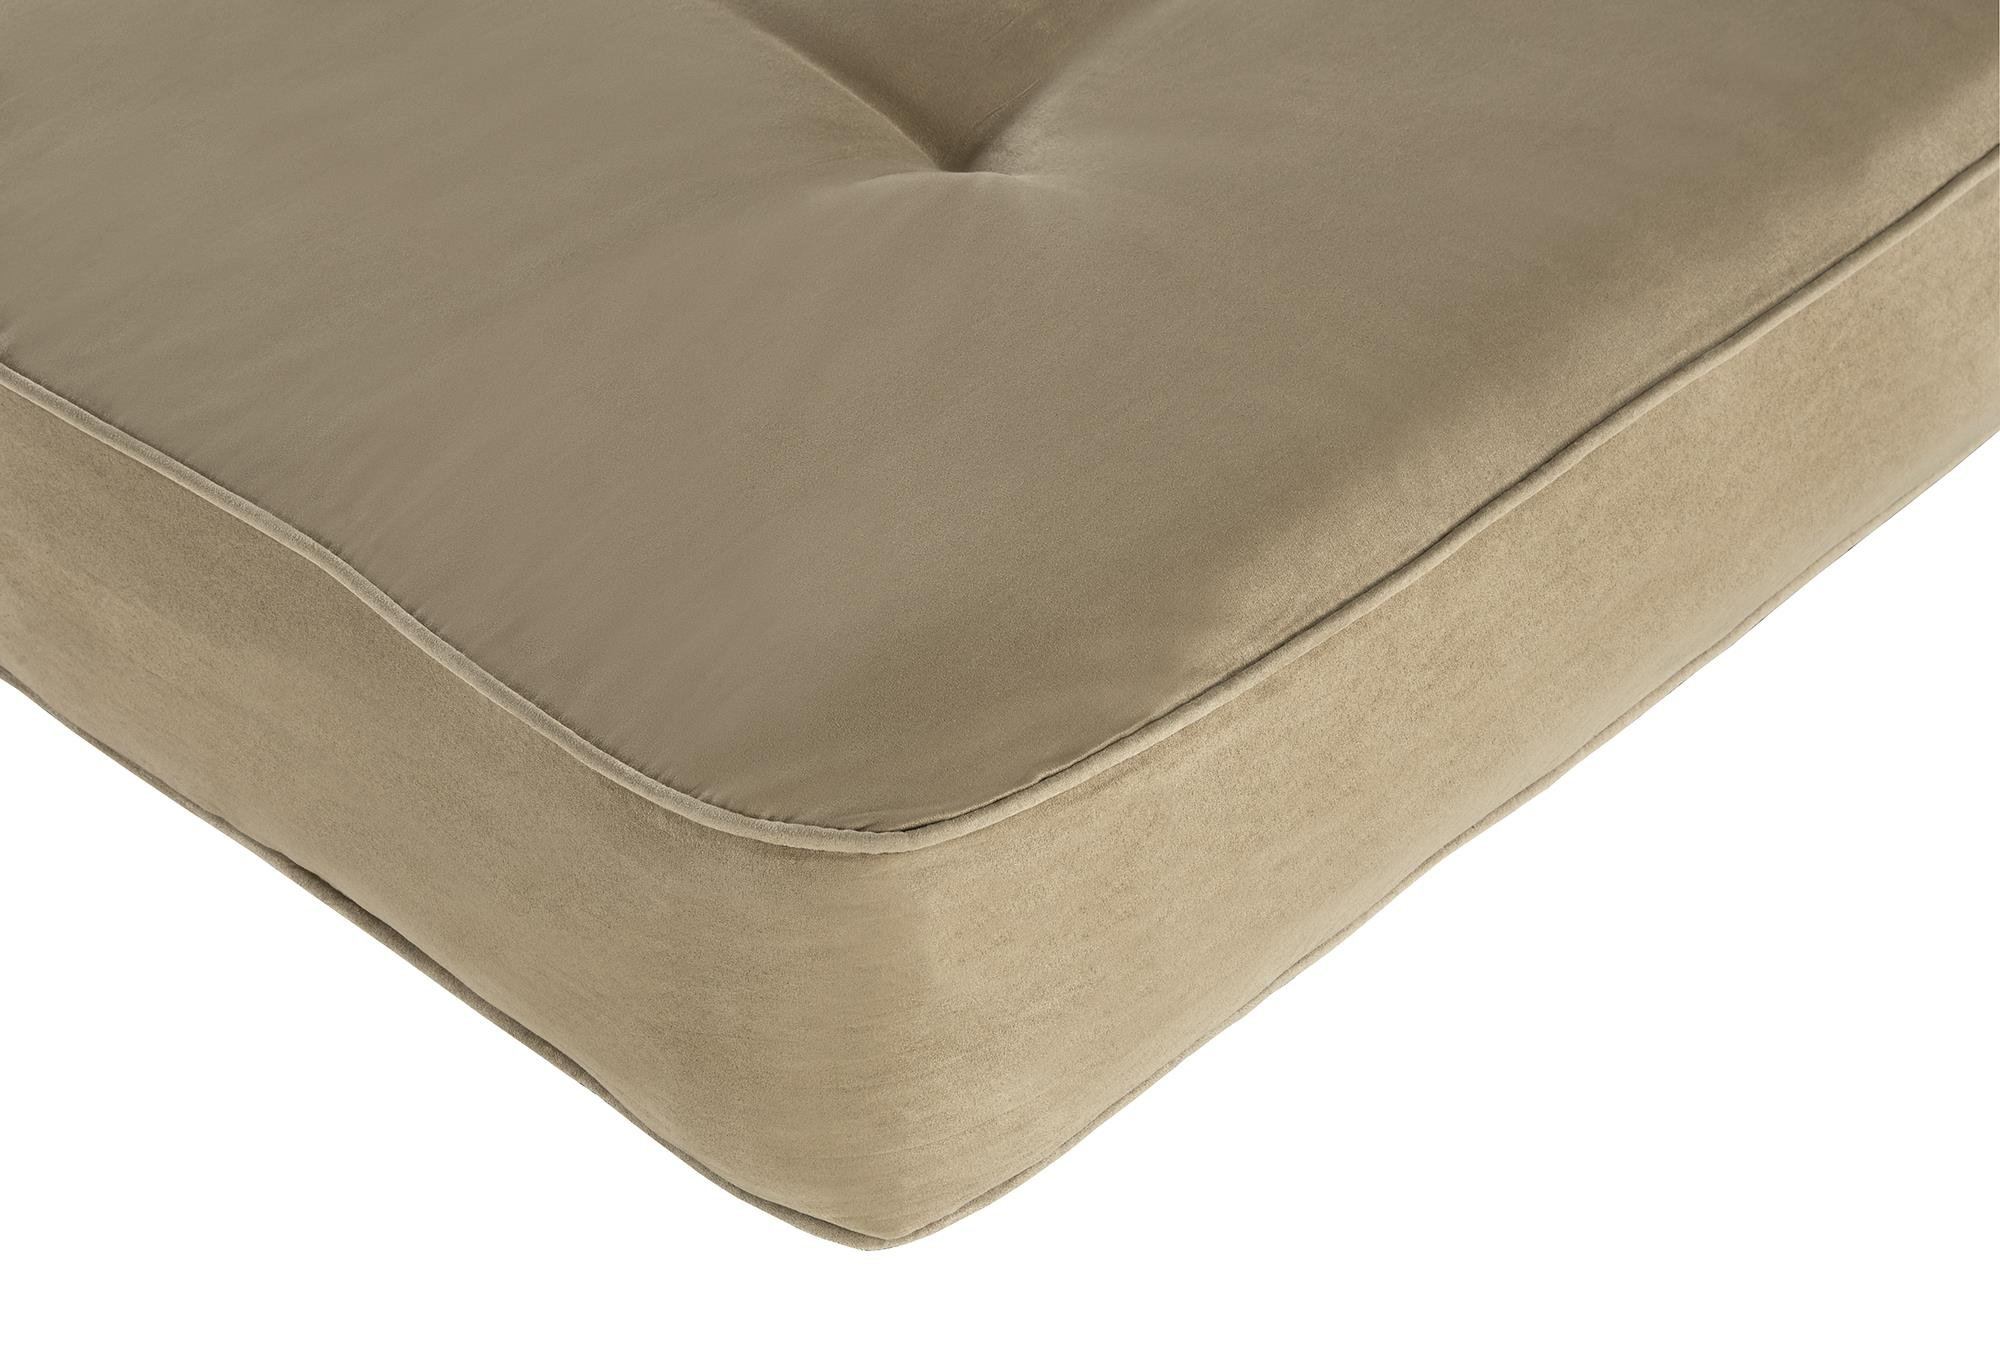 Dhp 8 Inch Independently Encased Coil Premium Futon Mattress Full